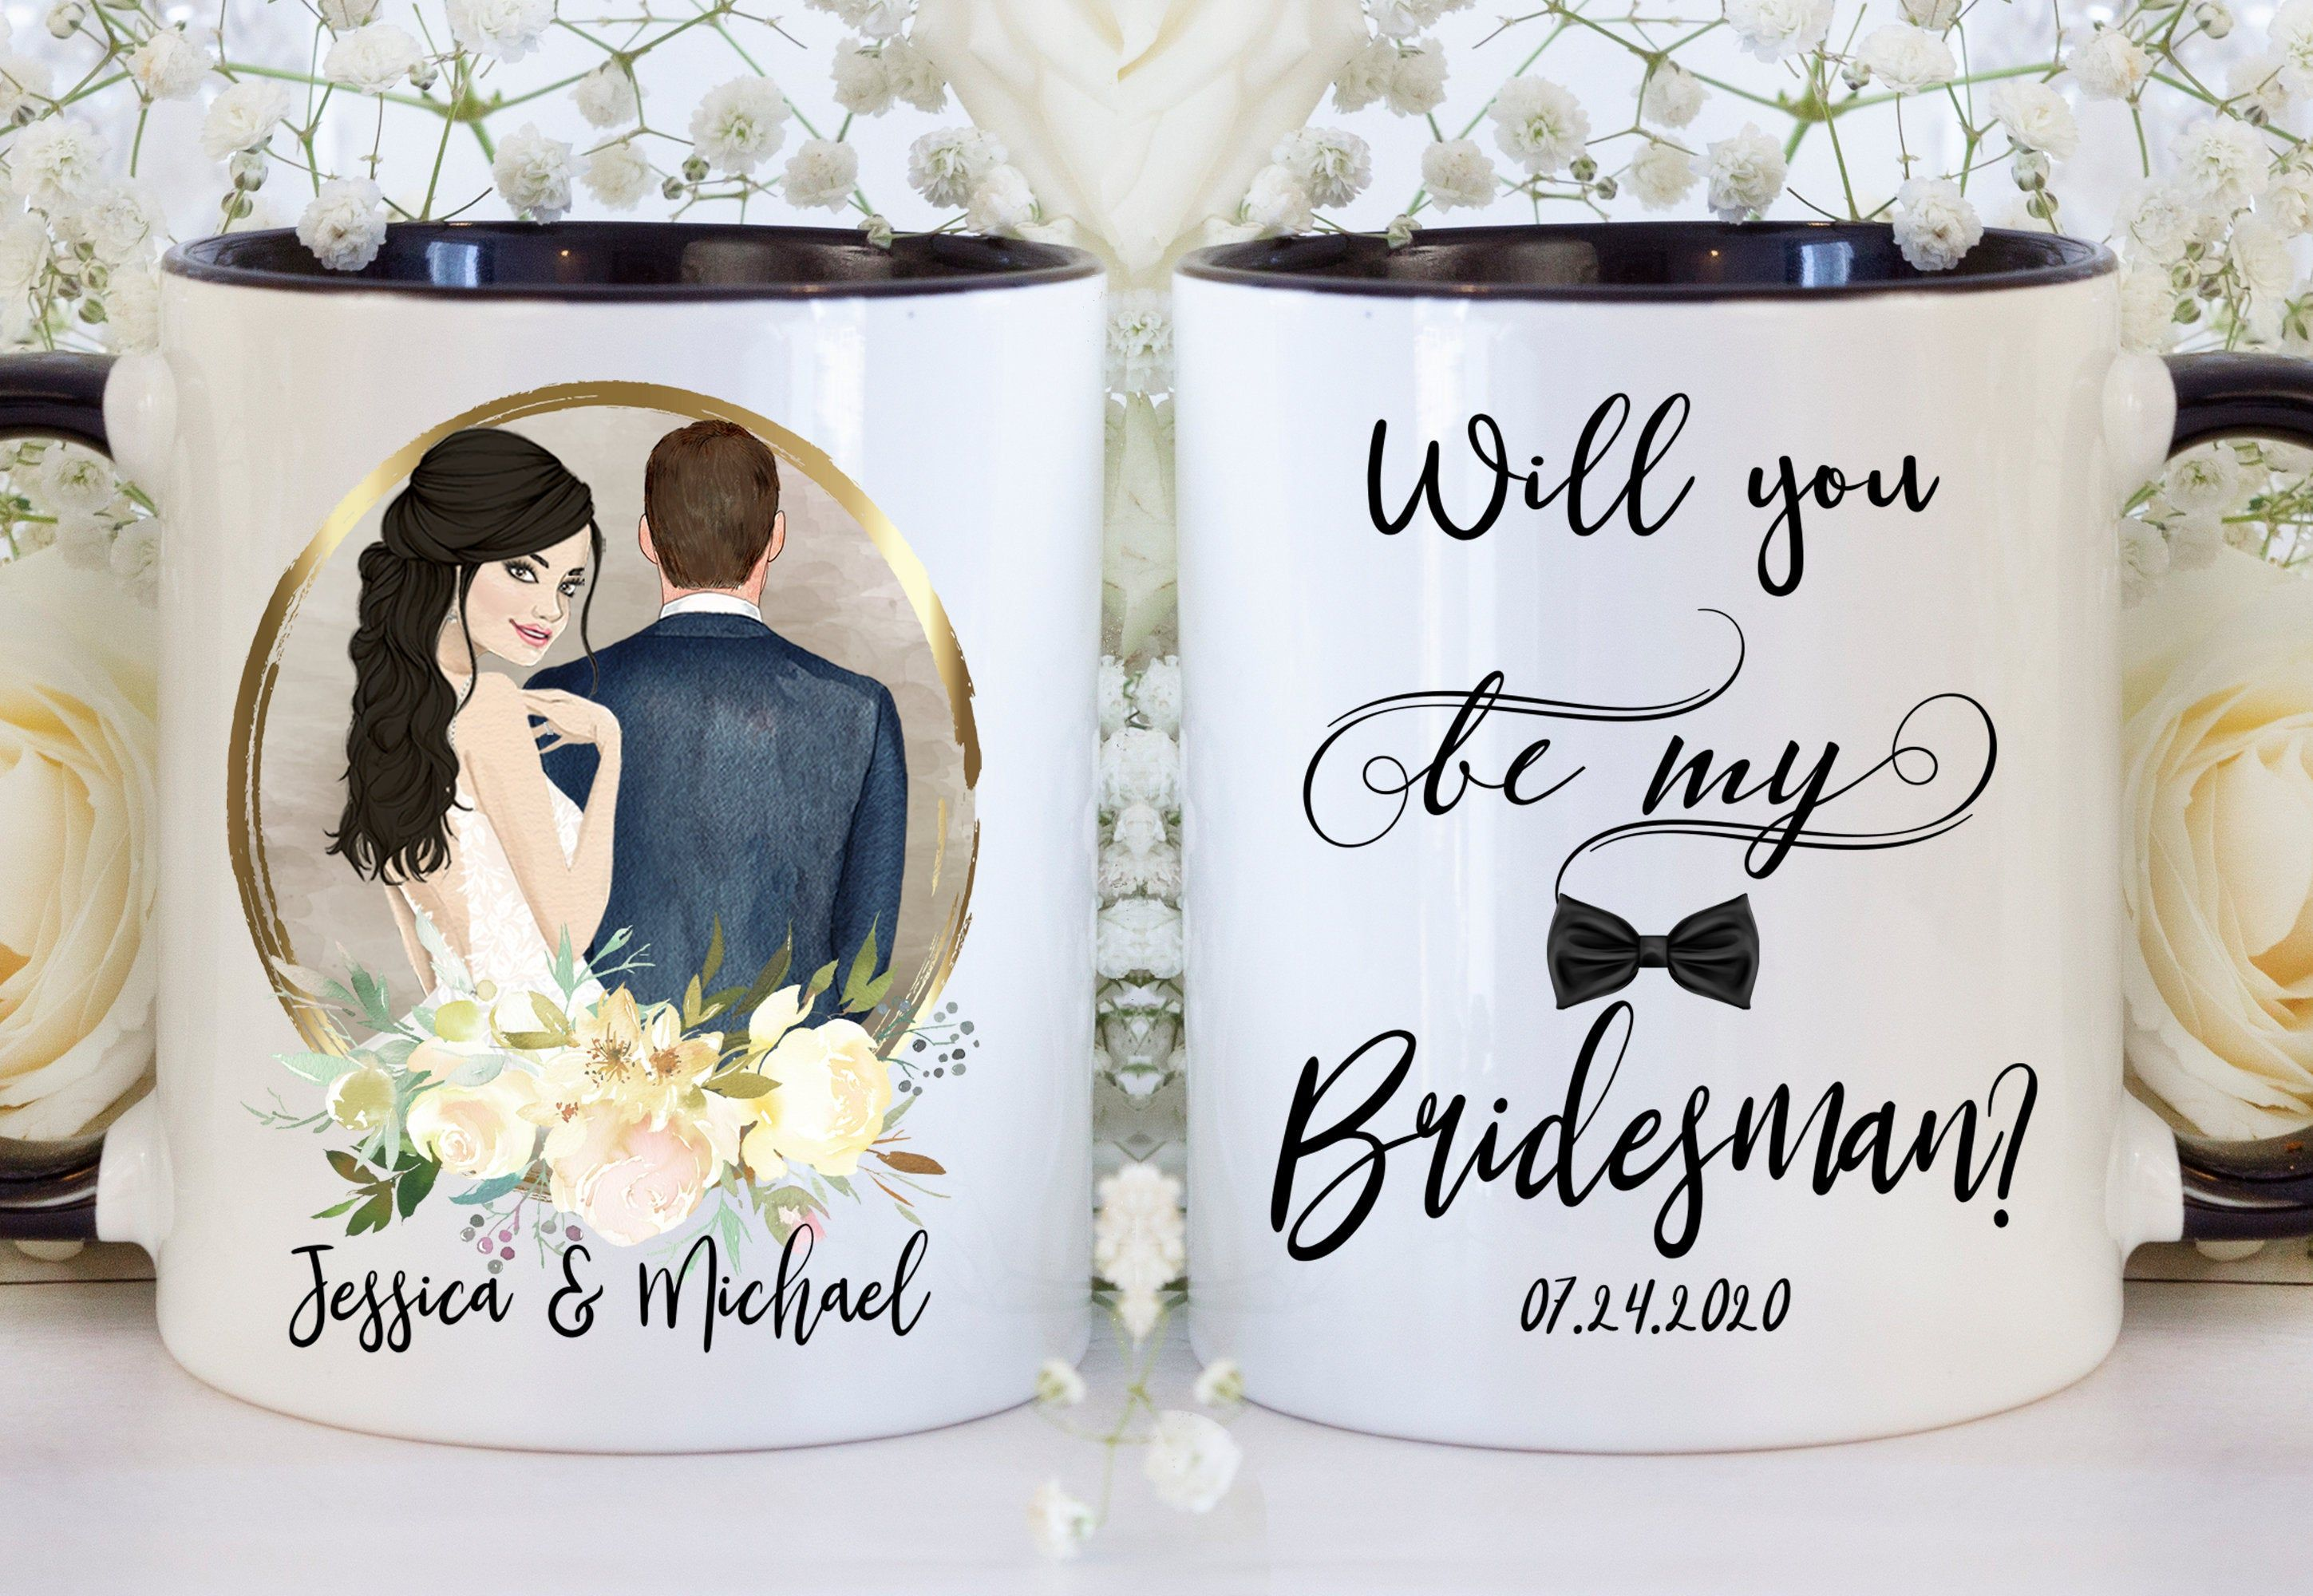 Custom Bridesman Wedding Gift Man Of Honor Gift Will You Be My Man Of Honor Gift Brother Mug Bridesman Gift Coffee Mug Thank You Man In 2020 Bridesman Gifts Wedding Gifts